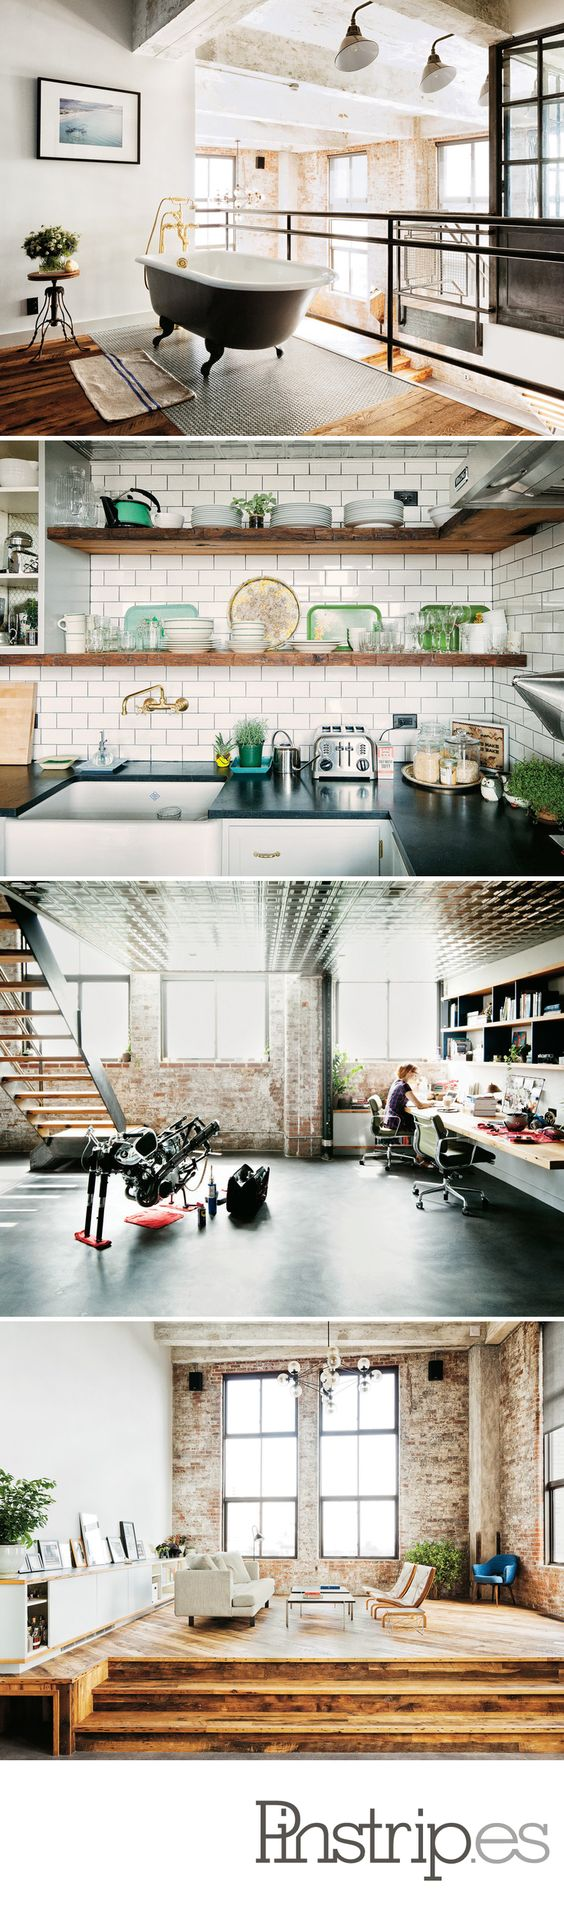 Decorating with Yahoo! money - Tumblr's David Karp's New Williamsburg Loft